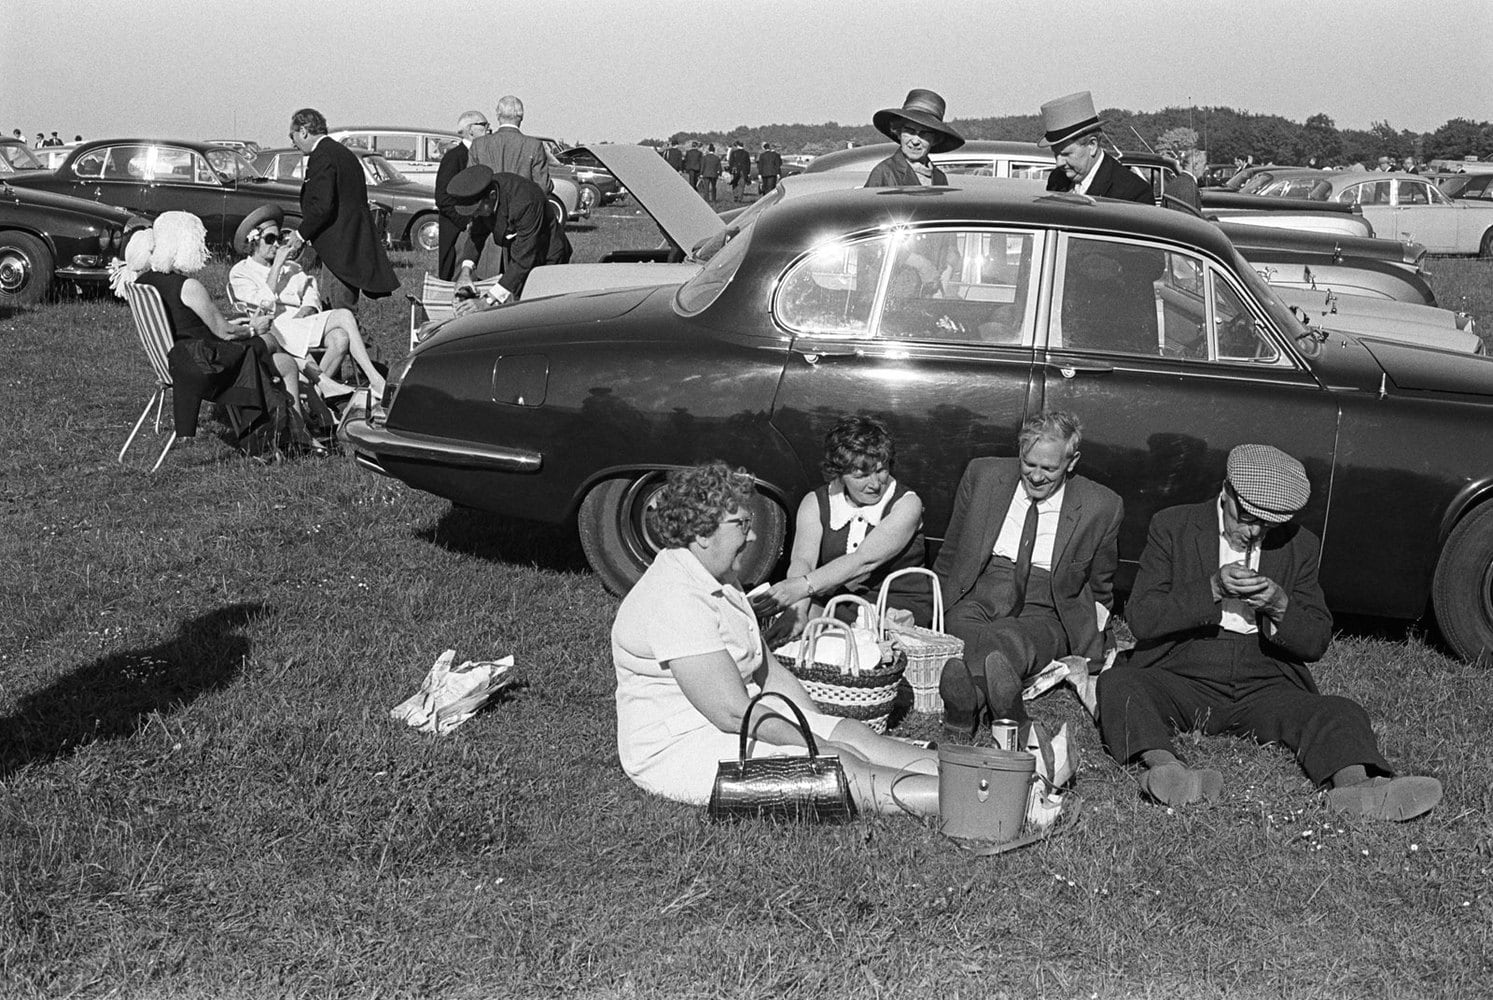 Homer Sykes, A day at the races, Derby Day picnic horse racing at Epsom Downs, Surrey, 1970